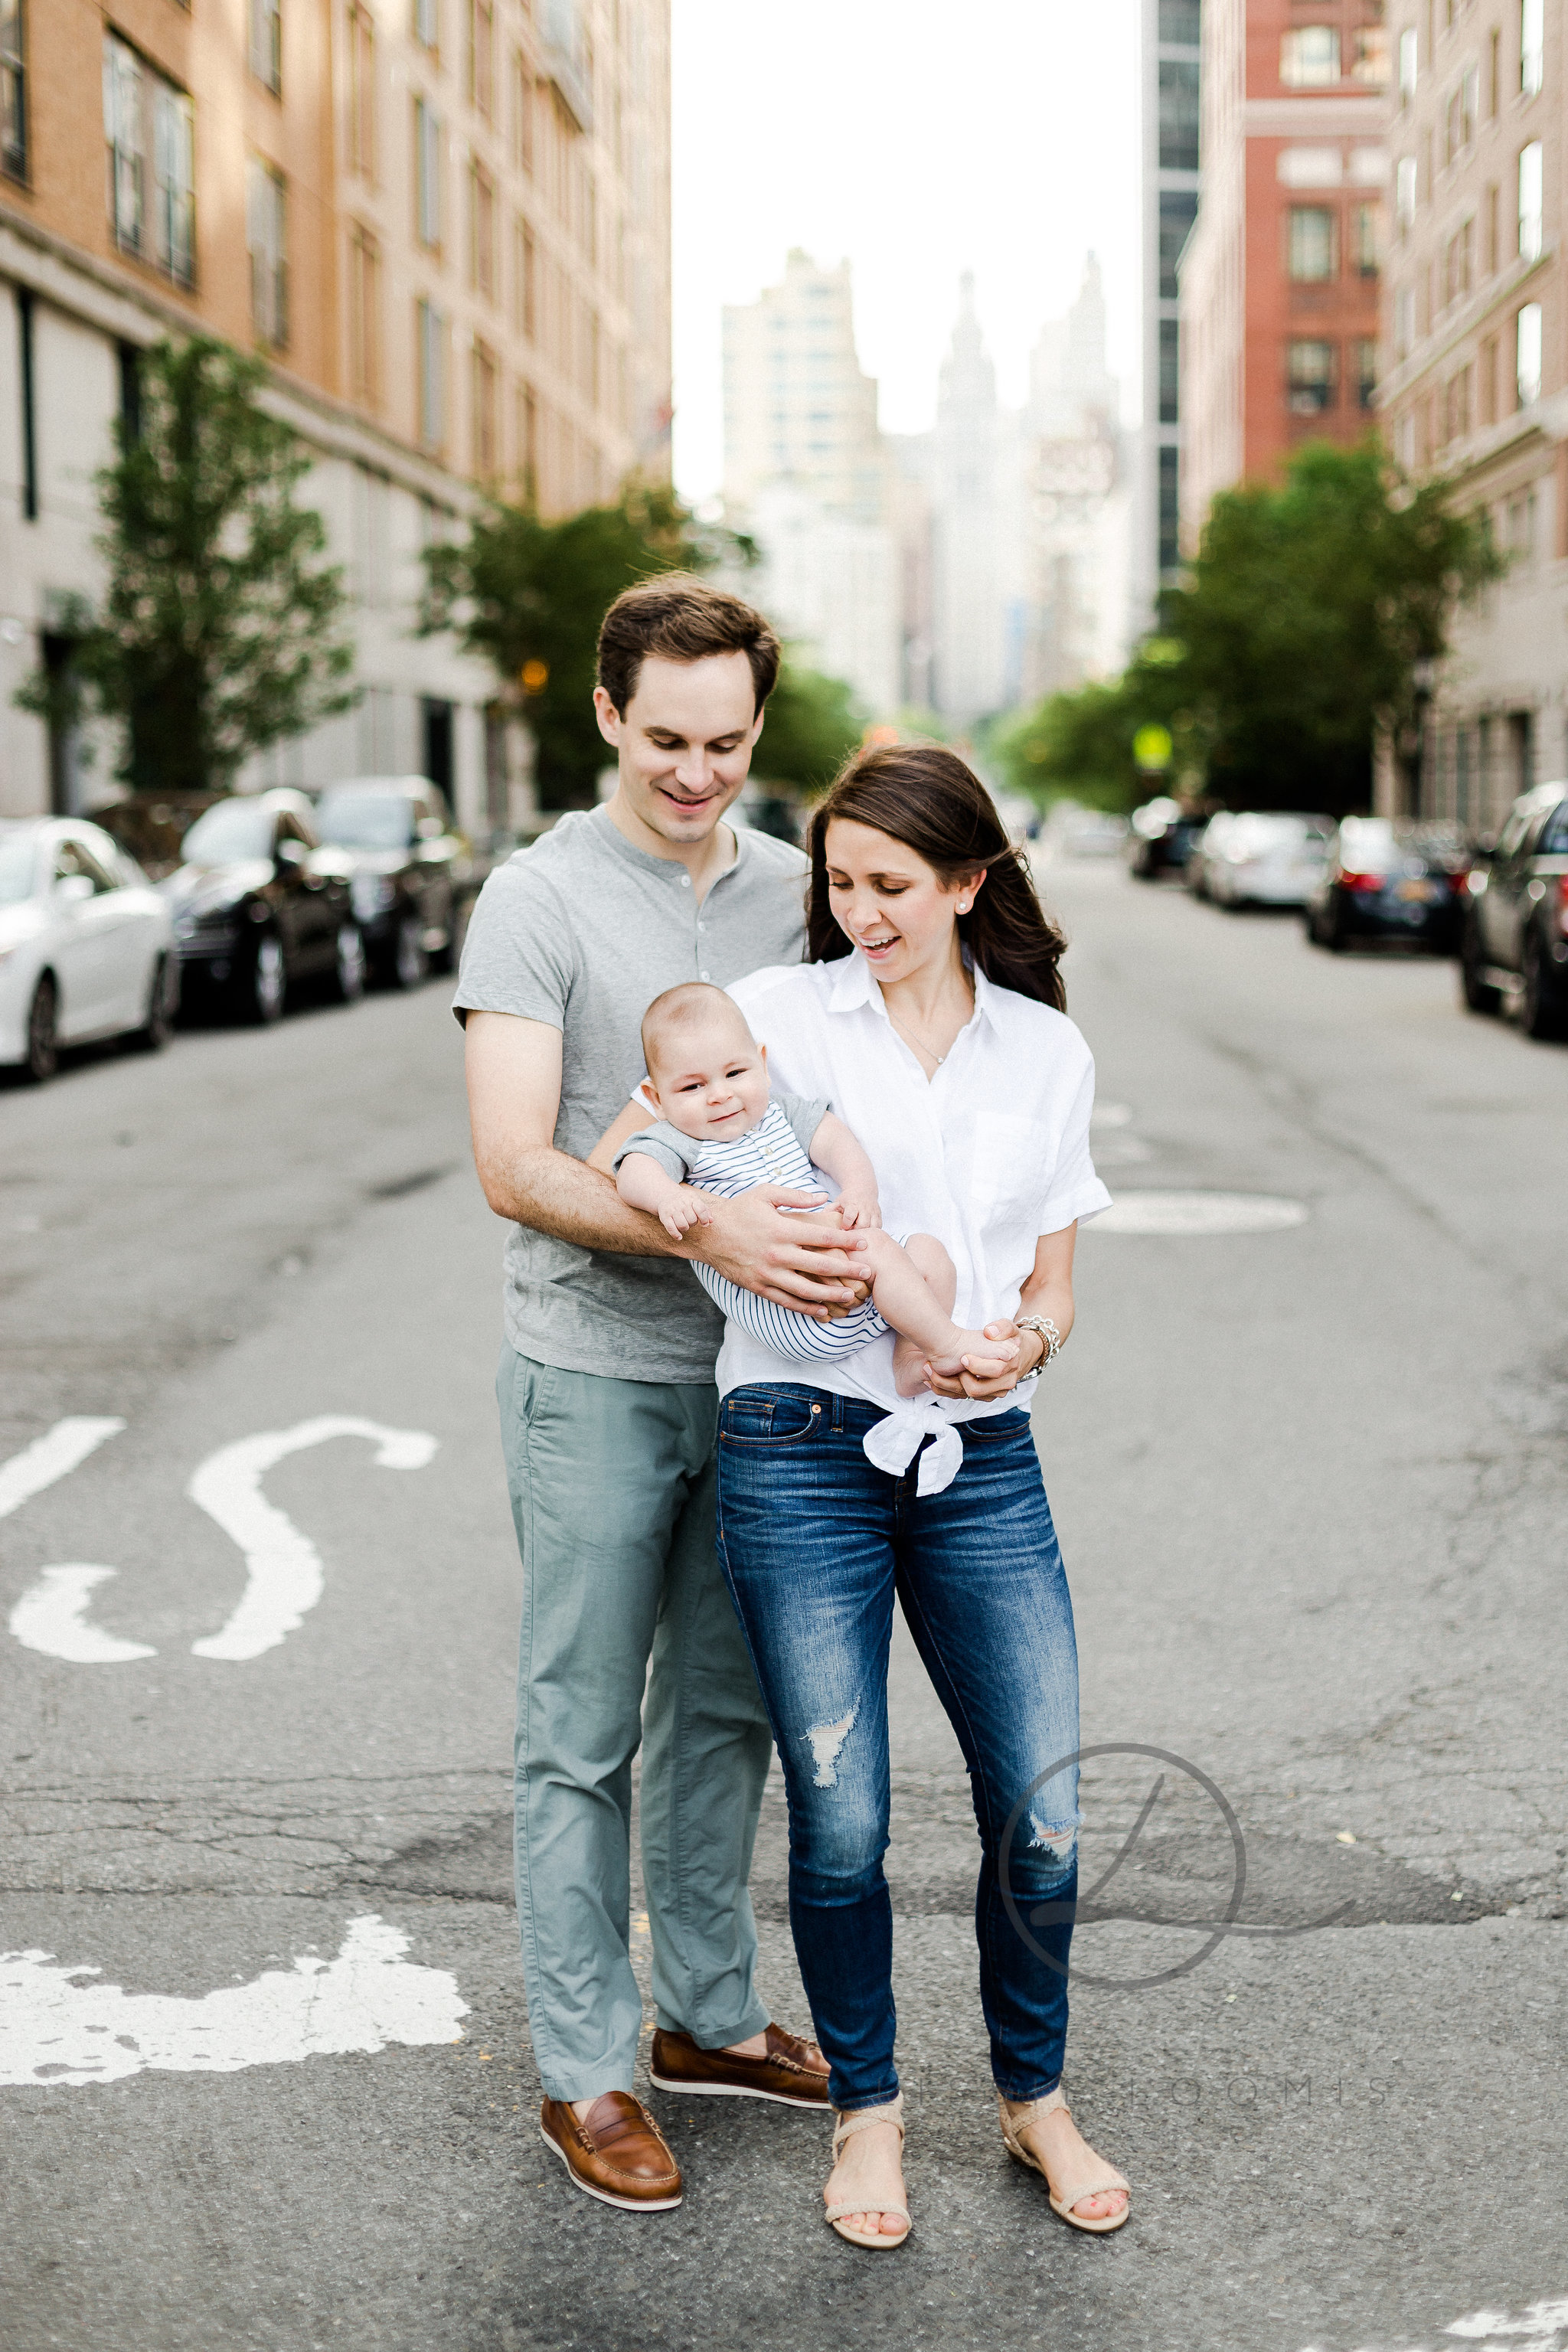 lissie-loomis-photo-newyorkcity-family-photography-baby-photographer-brooklyn8.JPG